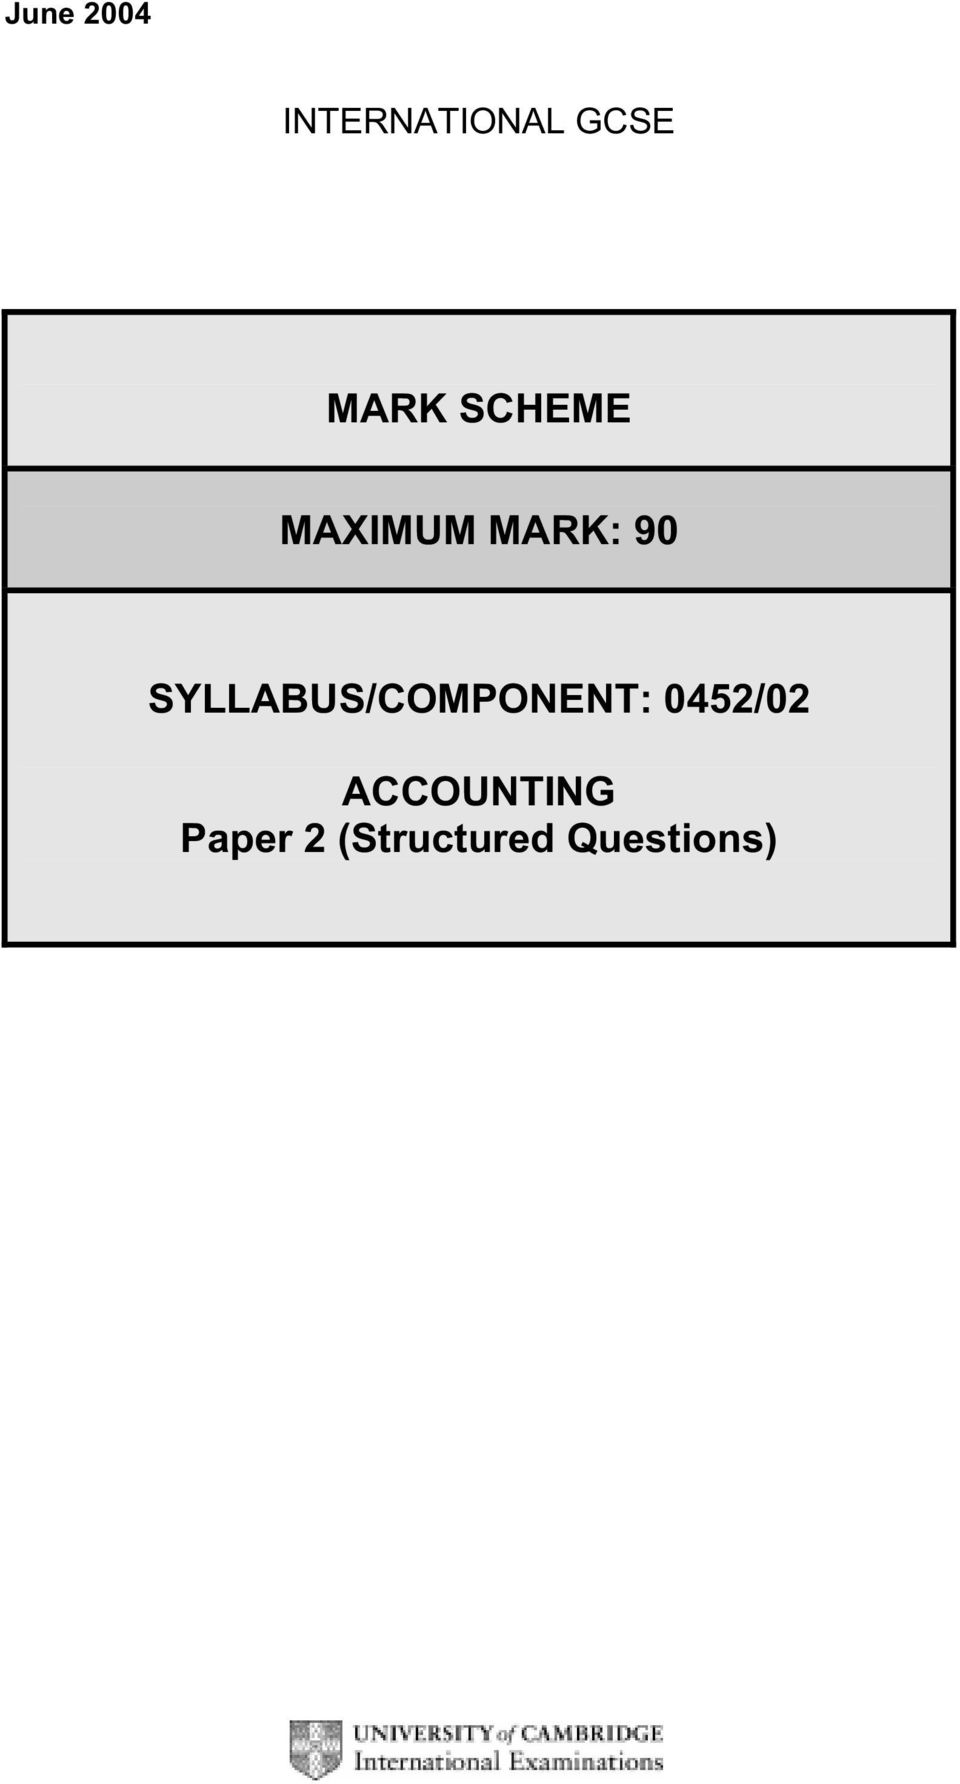 University of cambridge international examinations 0452 accounting syllabuscomponent 045202 6 page 1 mark scheme syllabus paper accounting june fandeluxe Choice Image